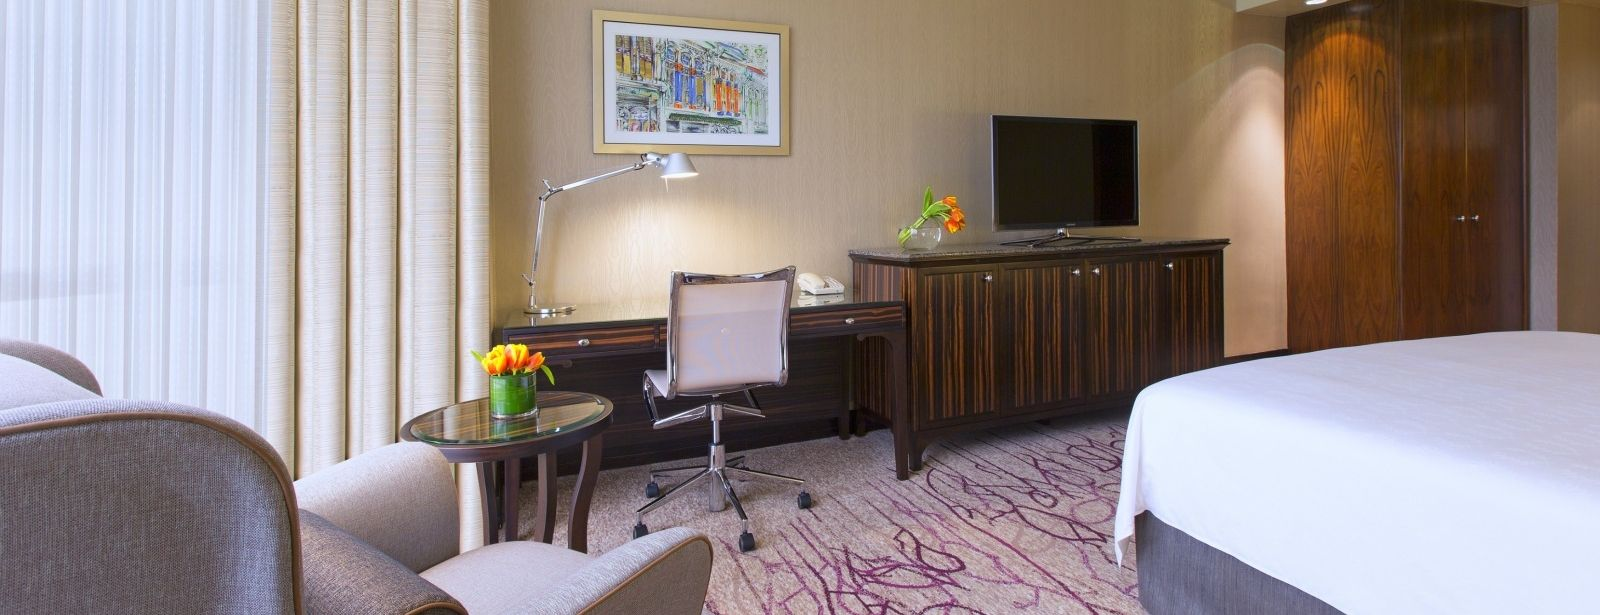 Executive Business Deluxe Room